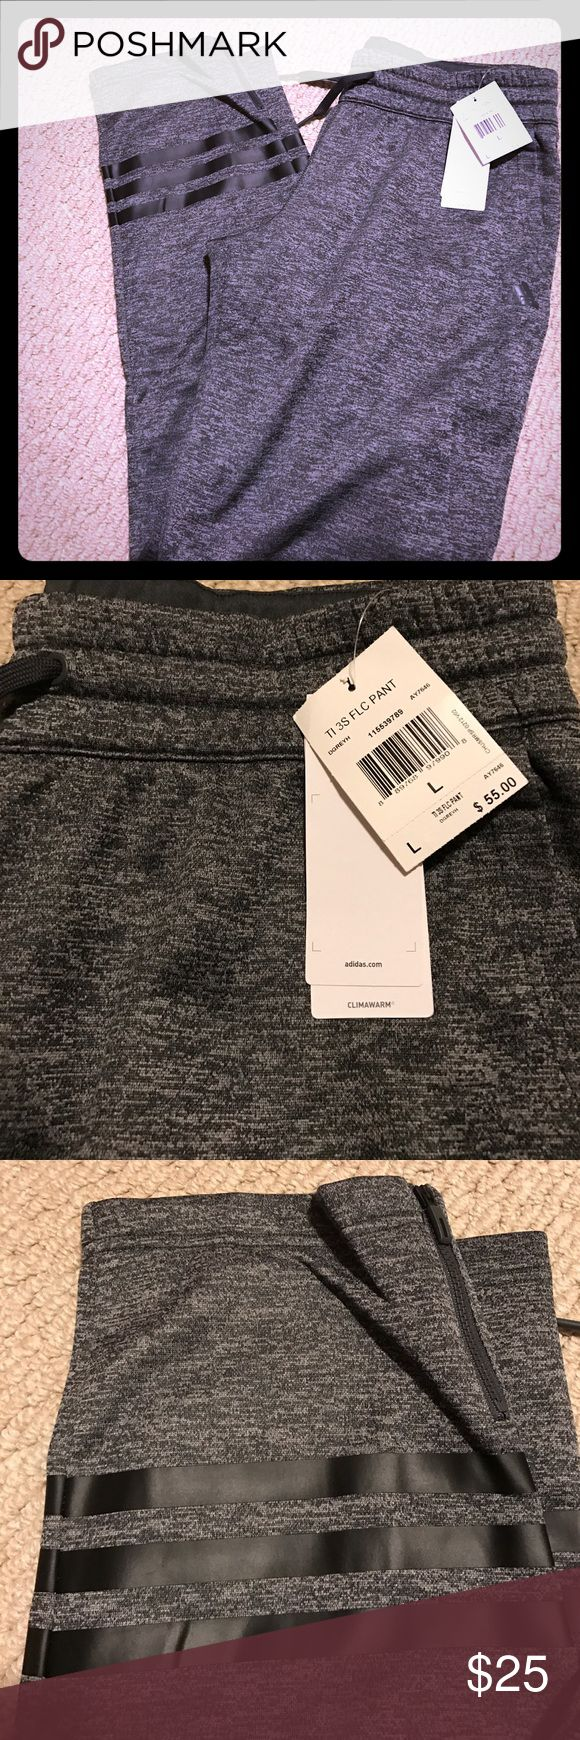 NWT 3 stripe fleece joggers NWT 3 stripe fleece joggers from adidas. Very comfy and warm, with three stripes and a zipper around the ankle. No trades. Reasonable offers considered but no lowballs accepted. Bundle to save more. Adidas Pants Track Pants & Joggers